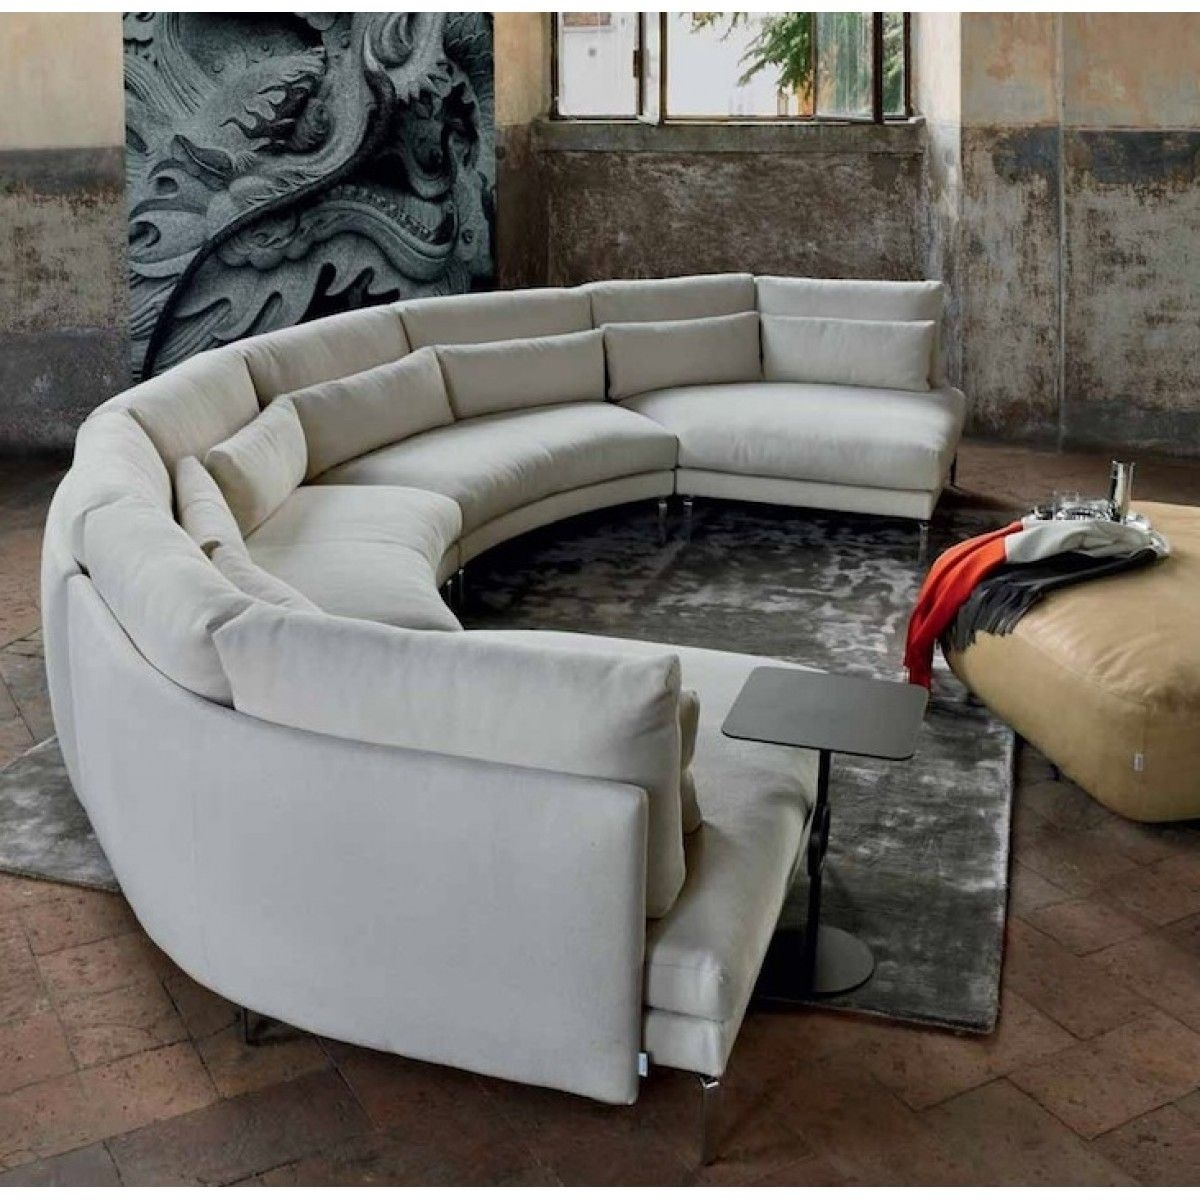 Pindaniel Harper On Decor | Pinterest | Round Couch, Comfortable With Semicircular Sofas (View 3 of 10)